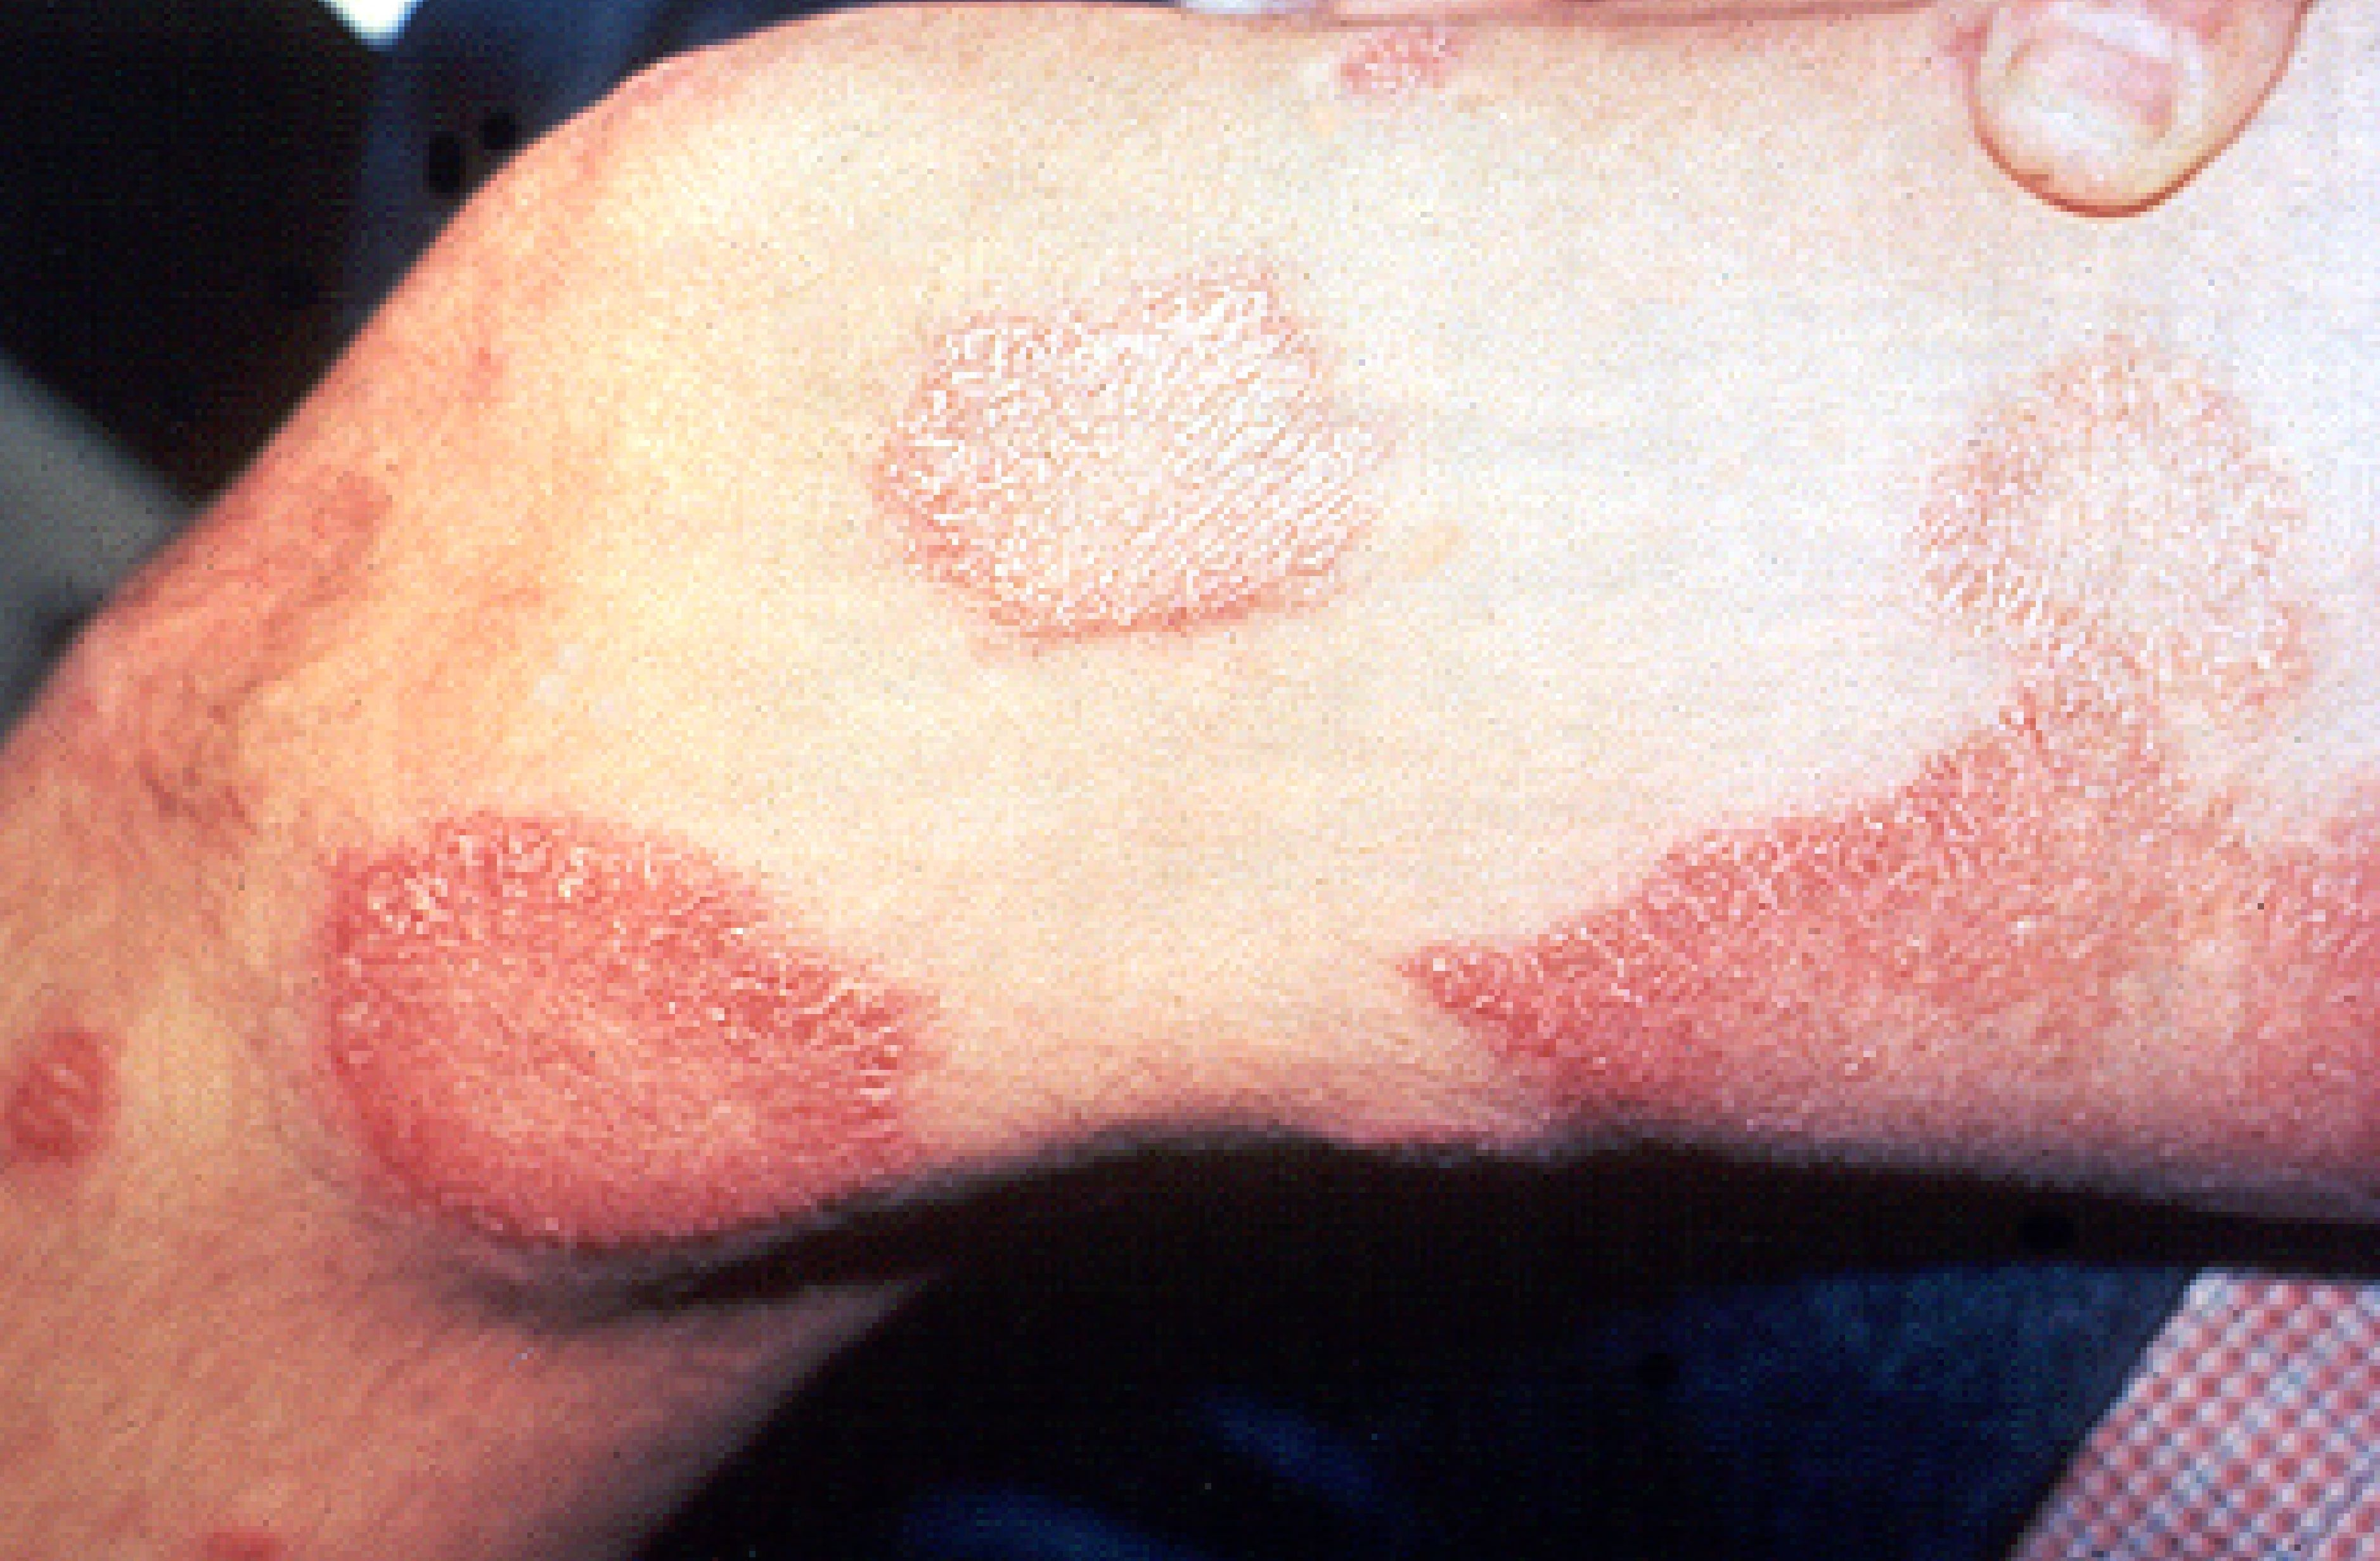 File:Leprosy thigh demarcated